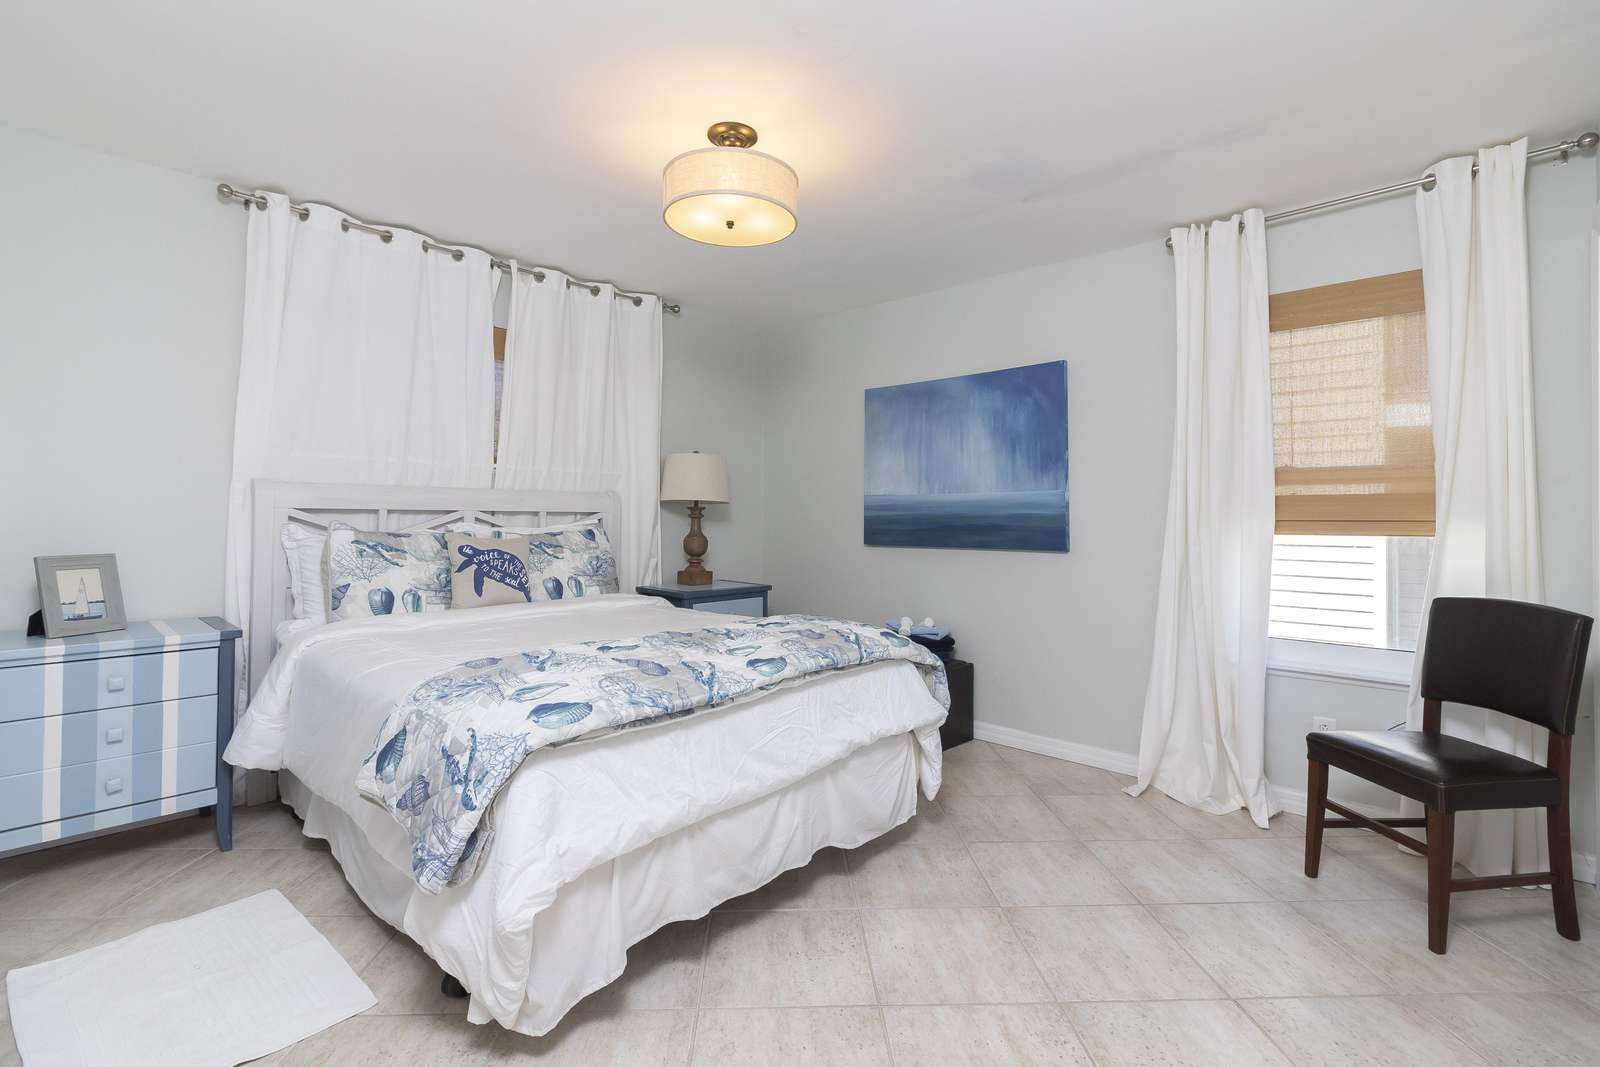 Ocean Sunrise - Guest Bedroom 2nd Floor